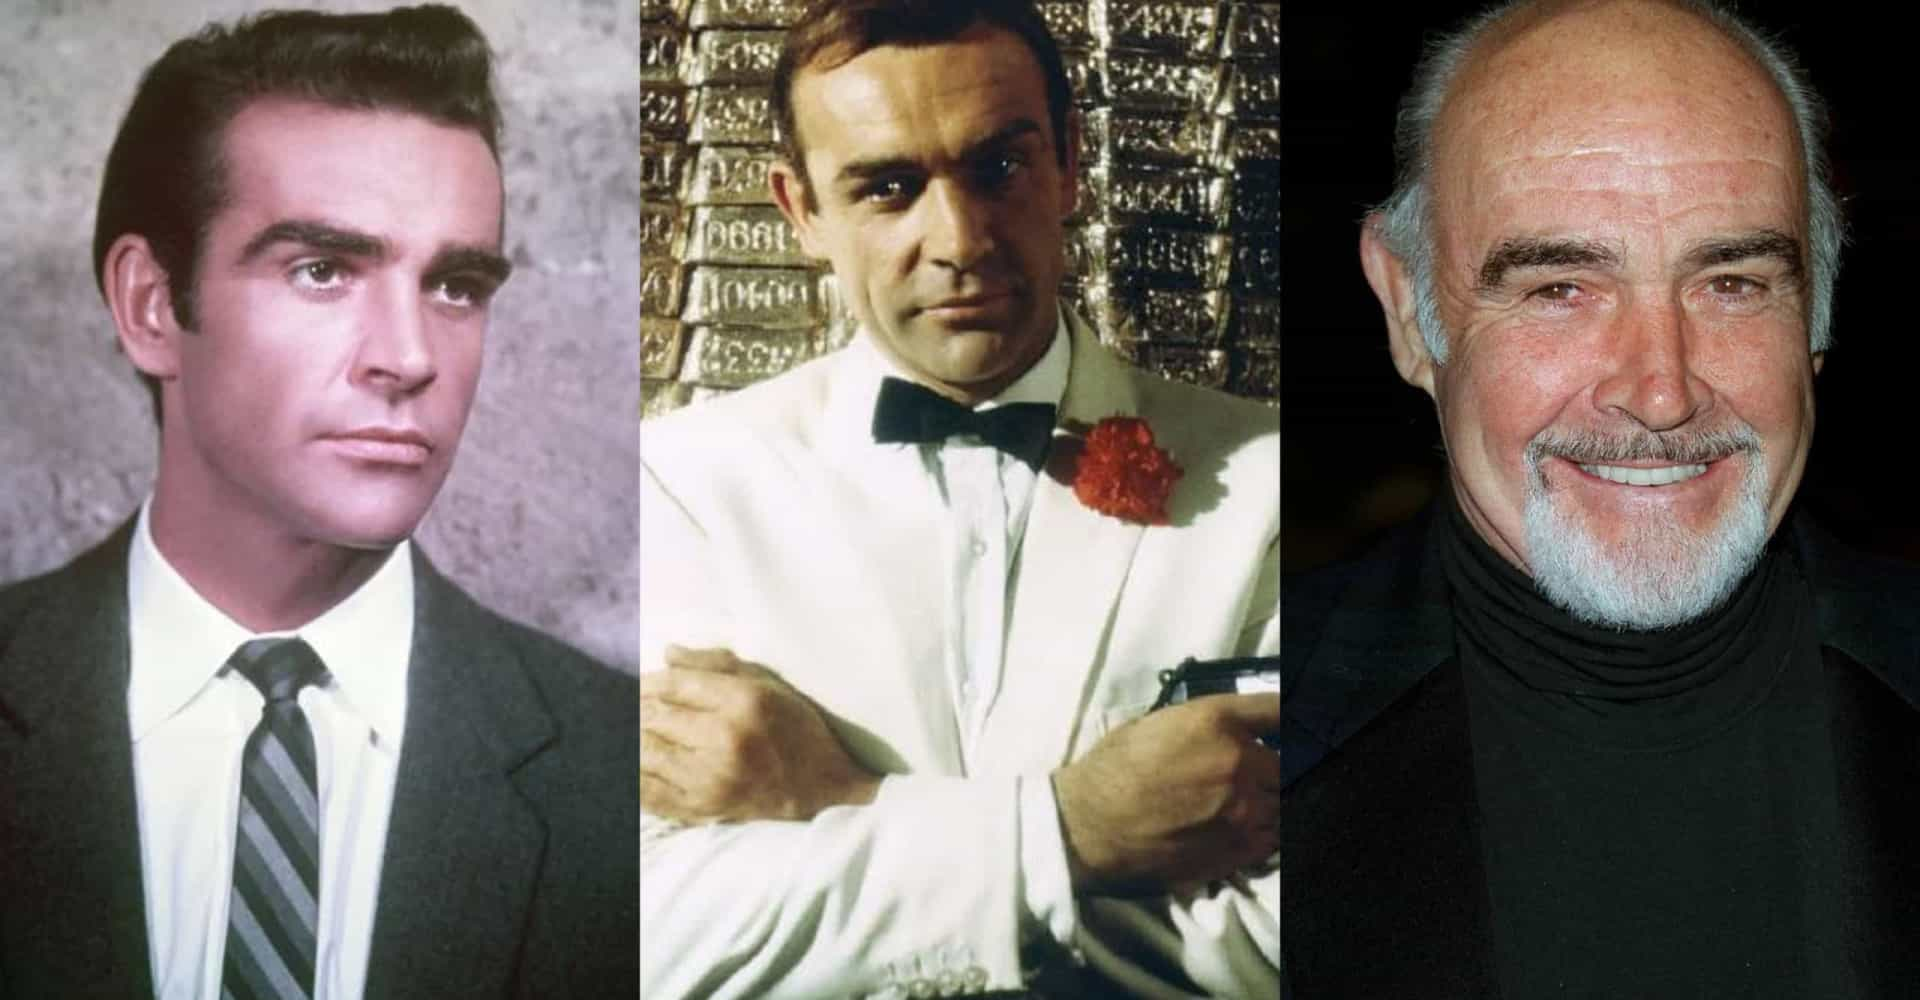 The name's Connery, Sean Connery!